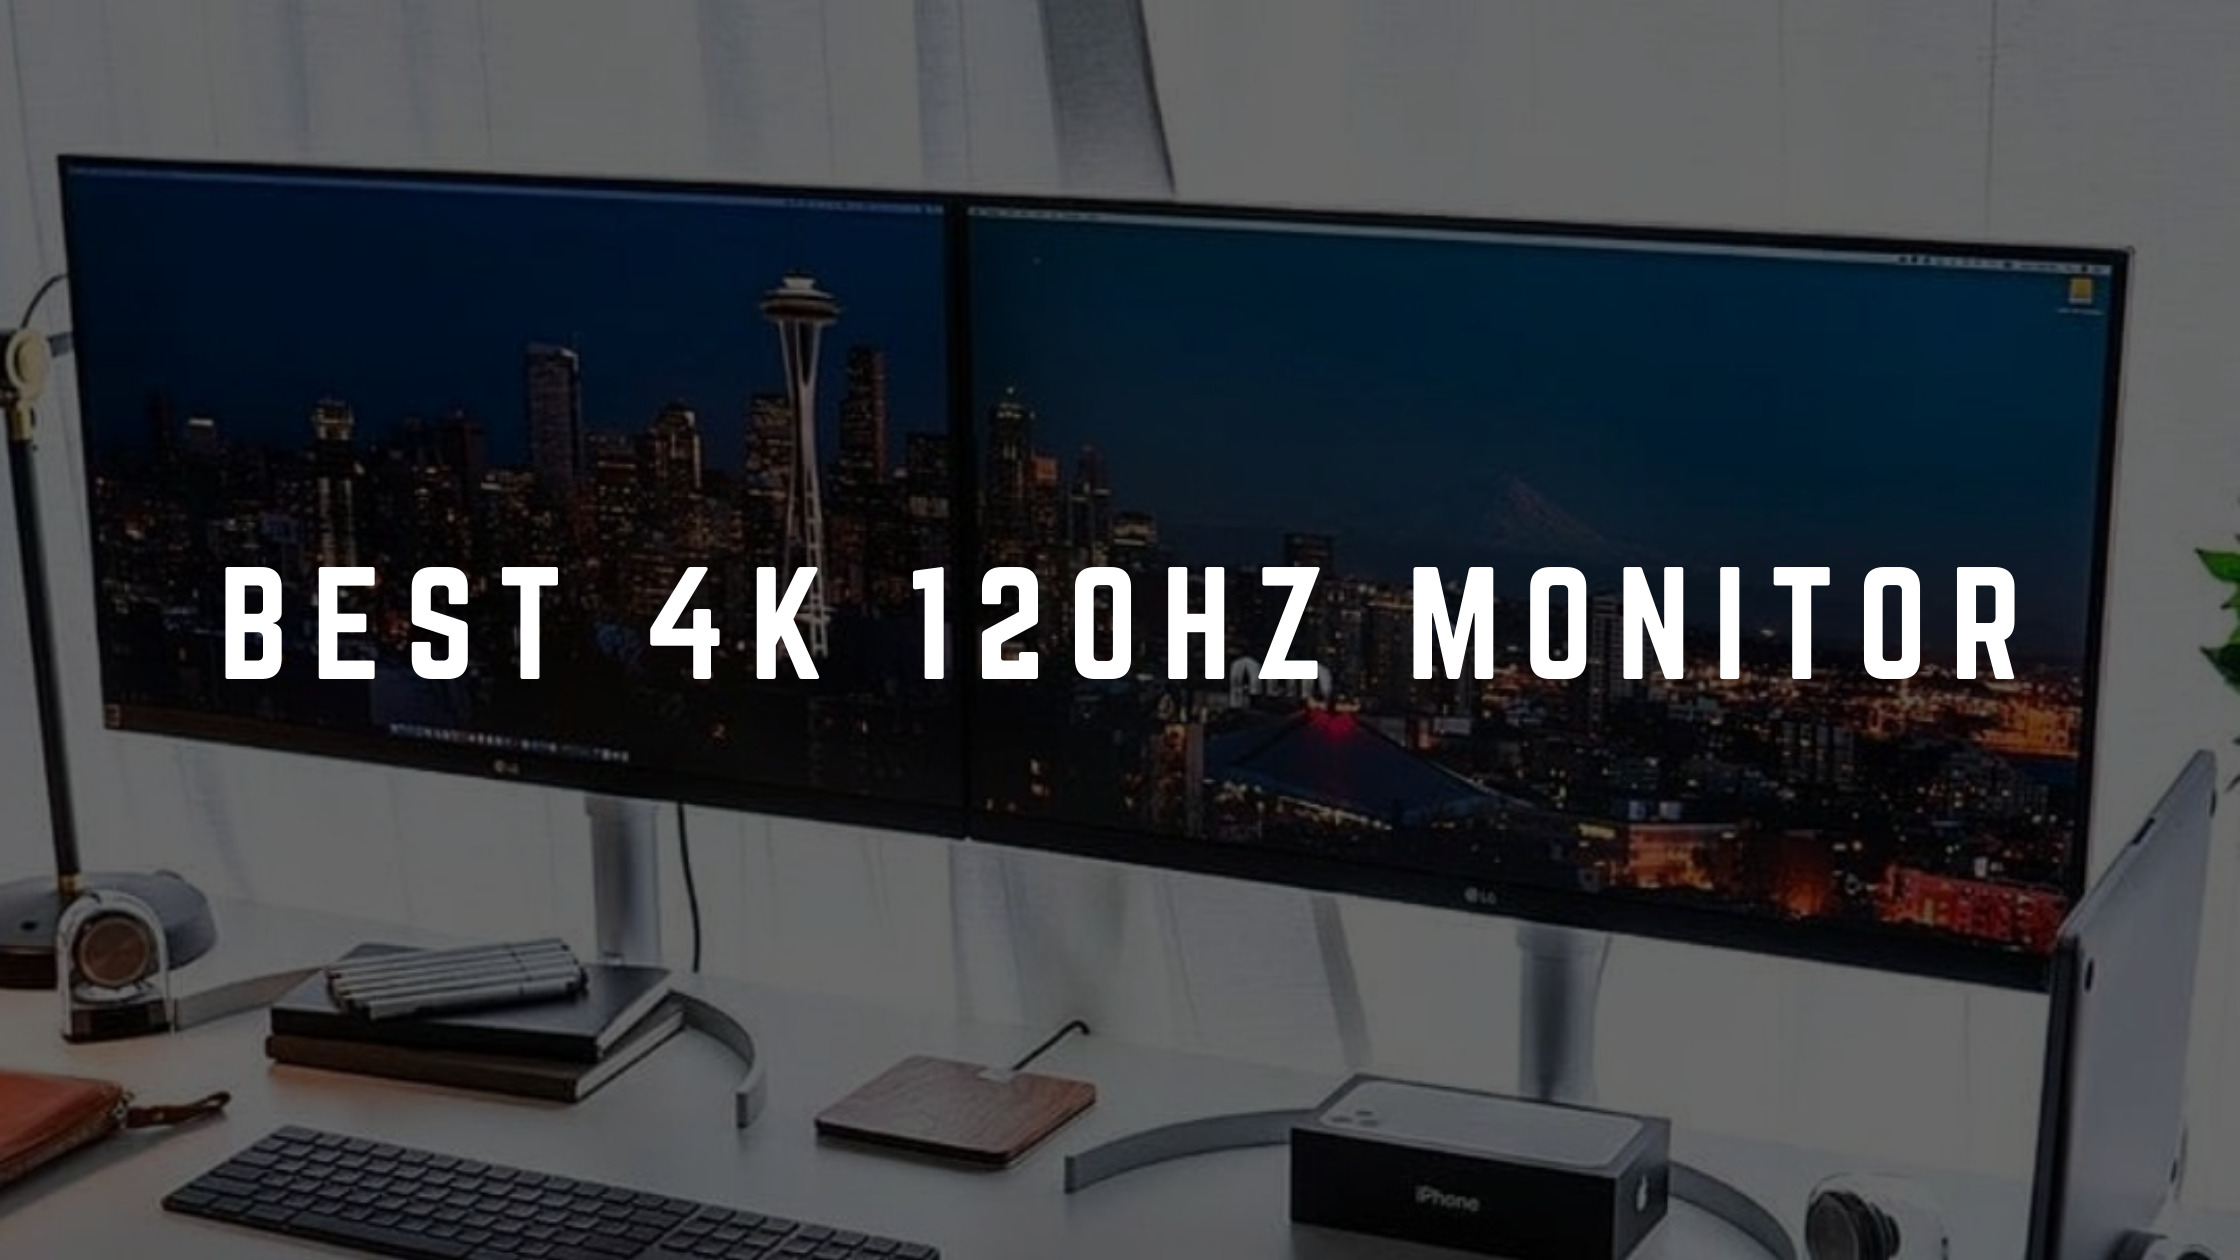 Best 4k 120hz monitor